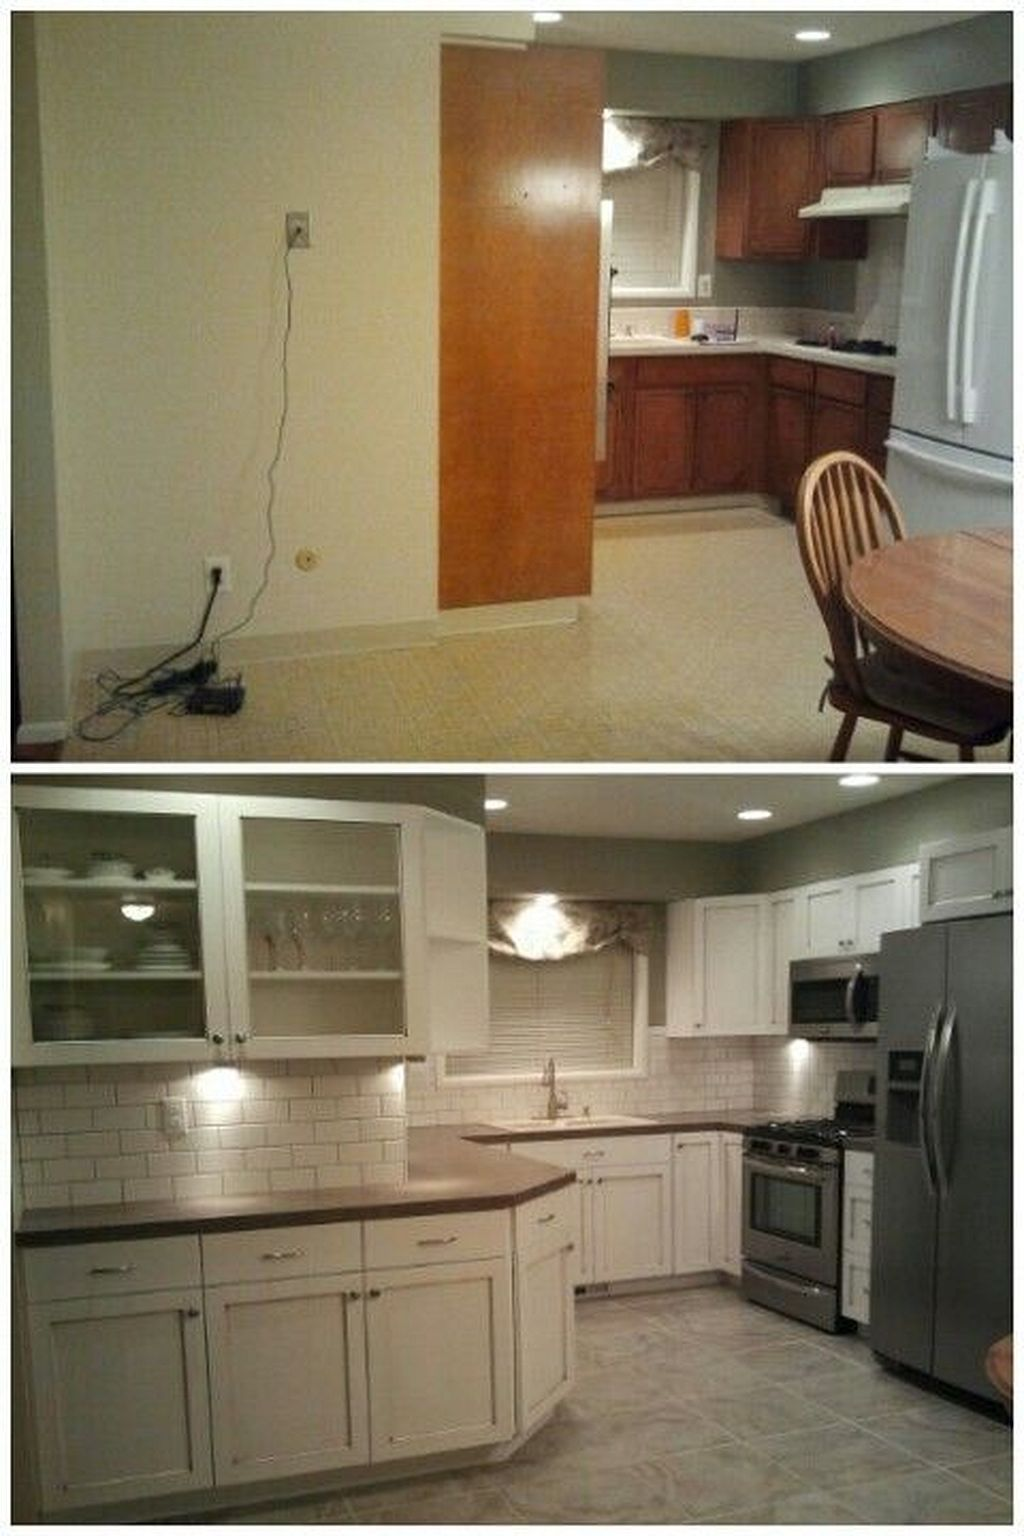 Apt Kitchen Renovations: 54 Quick And Easy Home Remodel Ideas